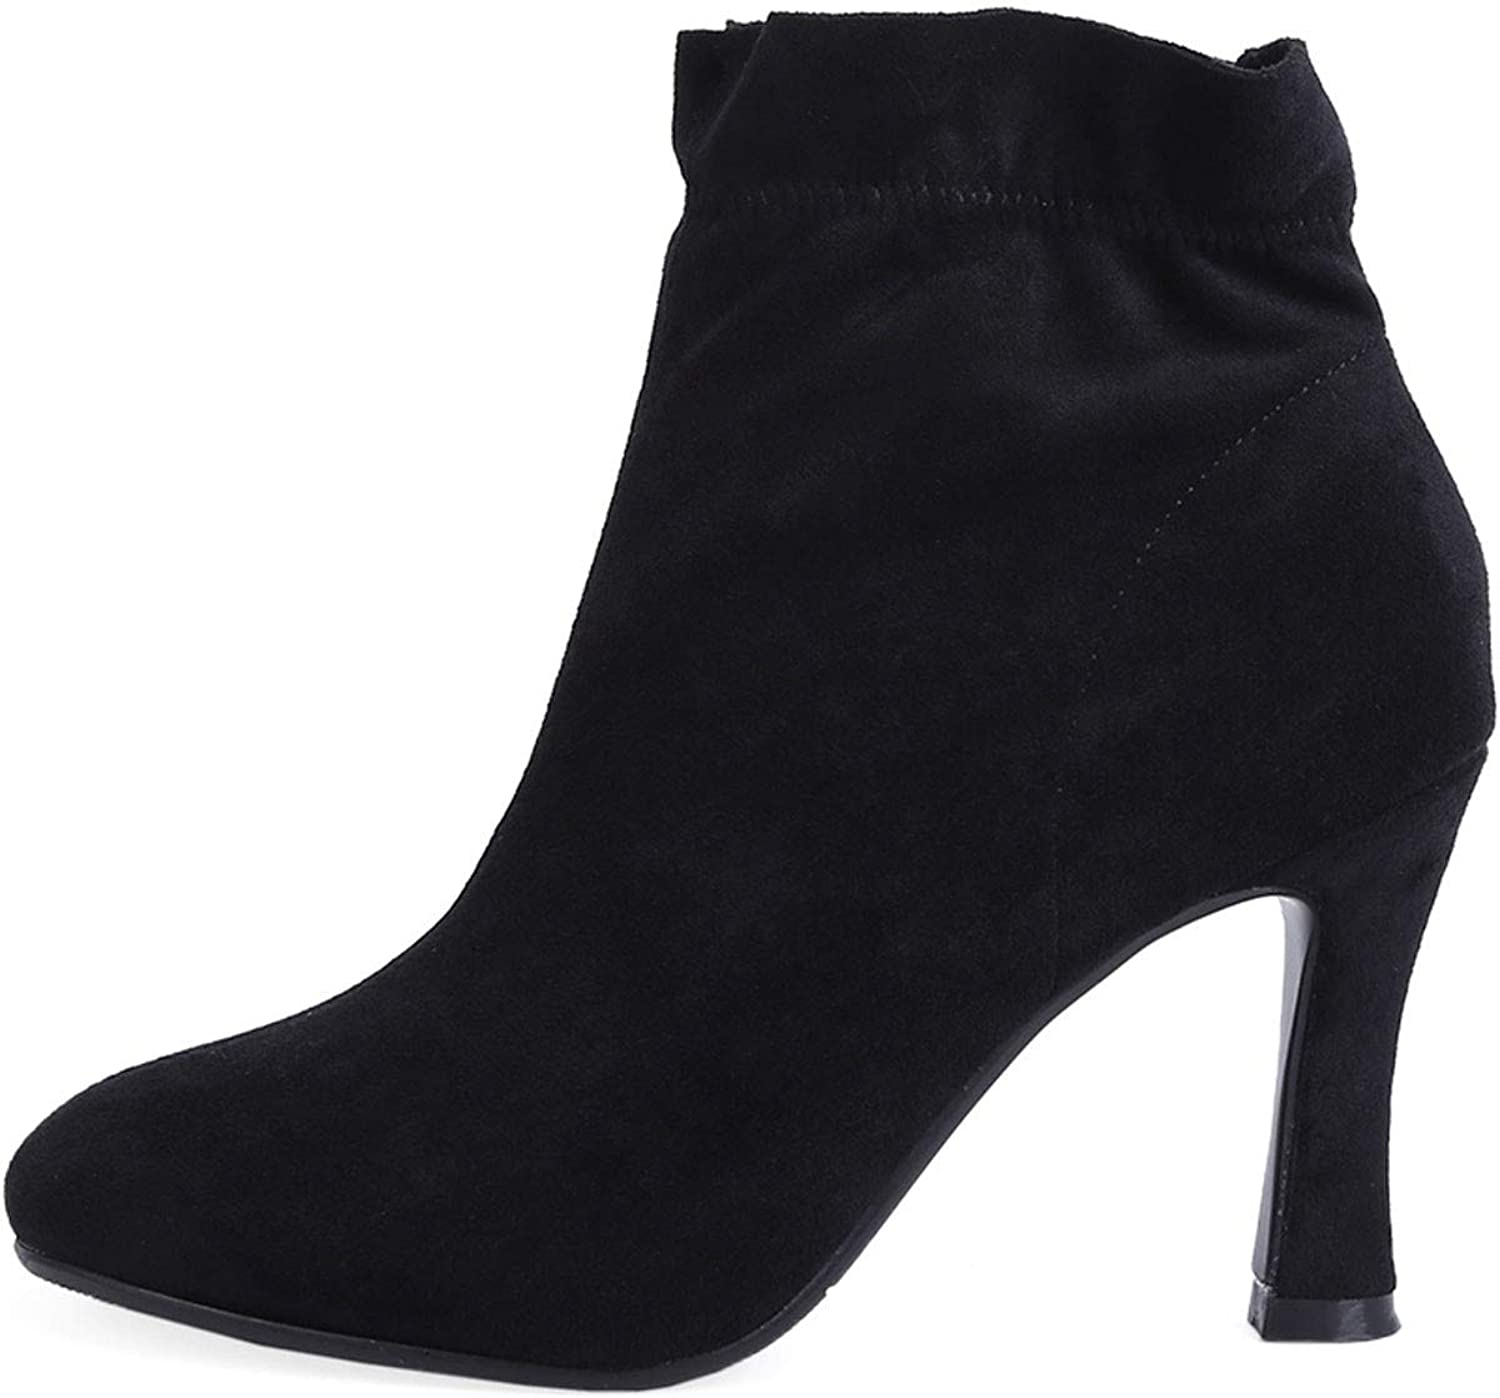 GTVERNH Women's shoes Square Head High-Heeled shoes Martin Boots 8Cm Fine Heel shoes Short Boots Elastic Boots and Bare Boots Women's shoes Fashion.